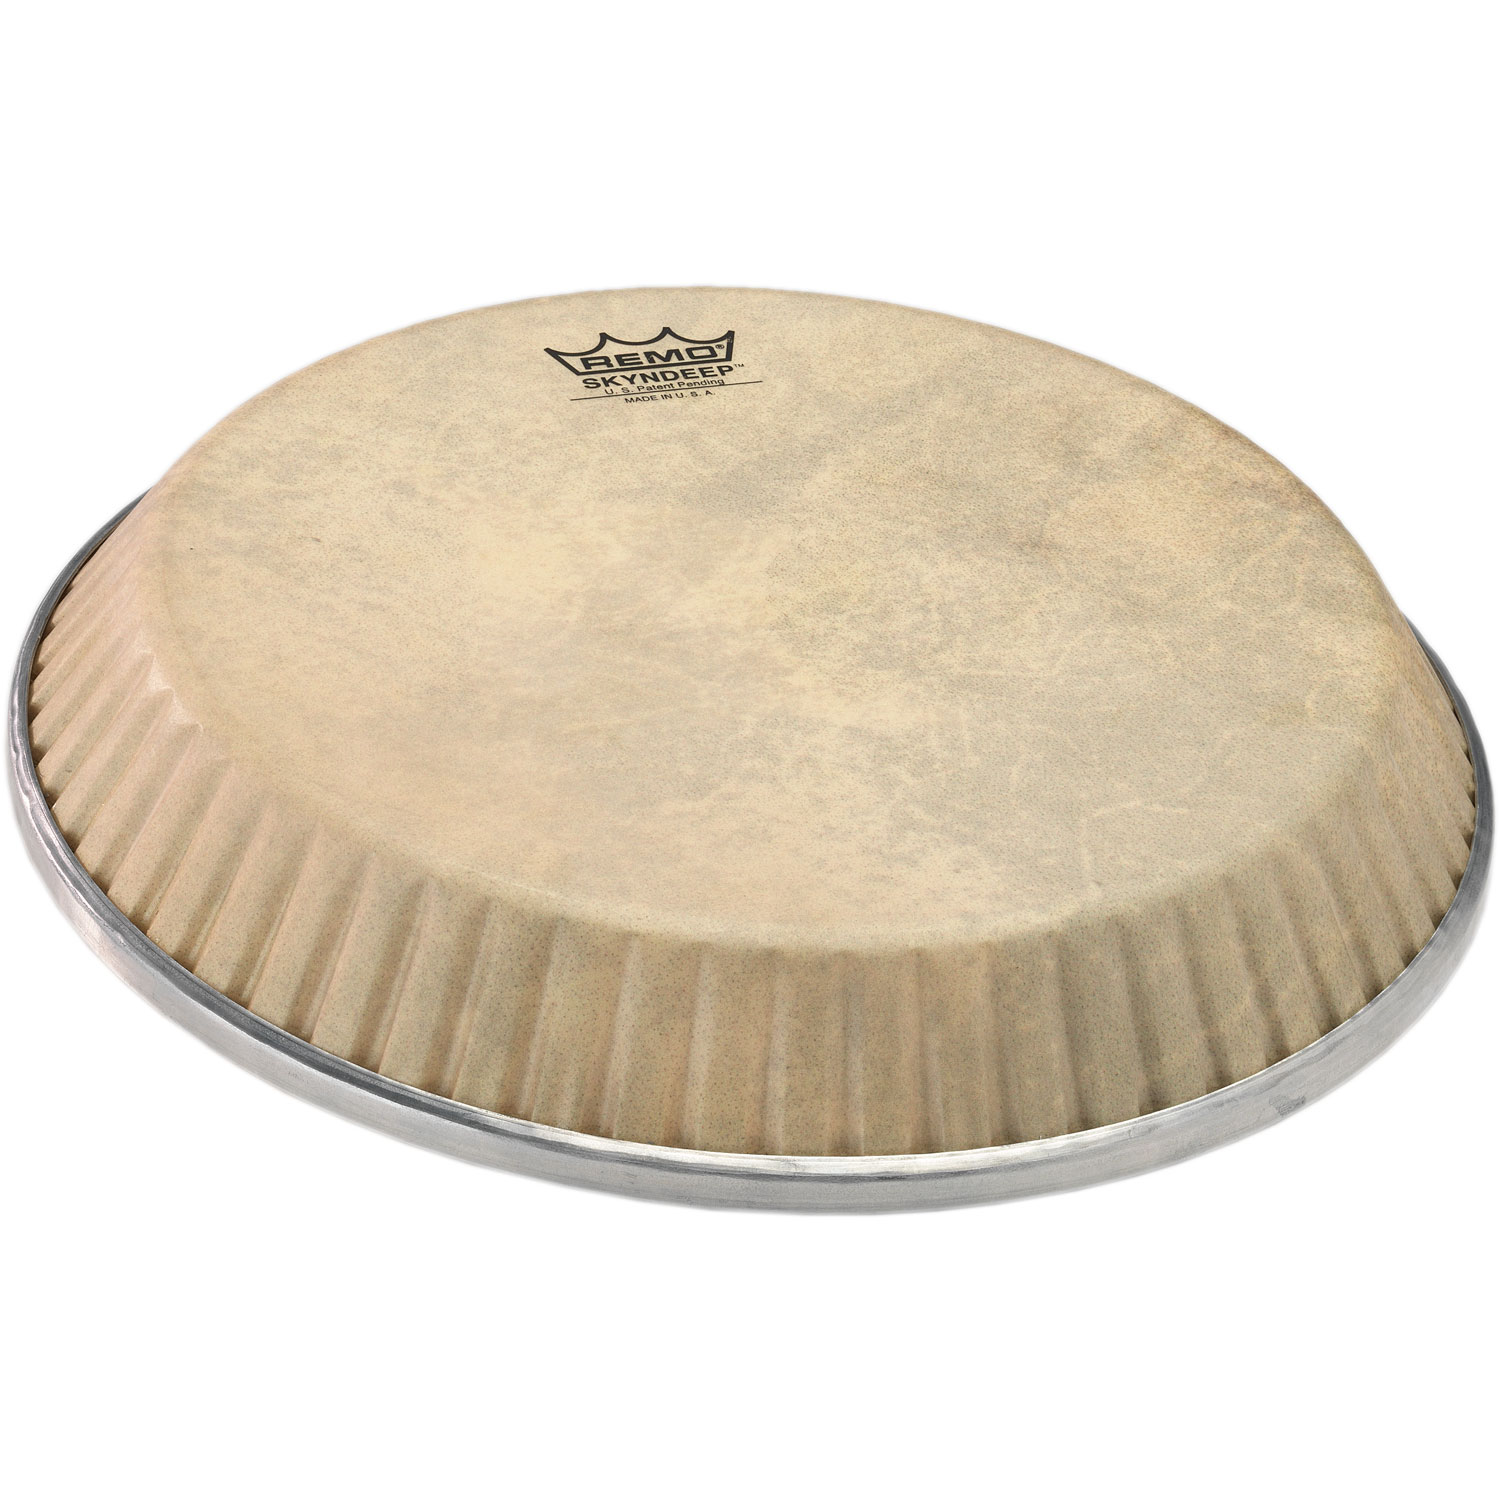 """Remo 13"""" Symmetry Skyndeep Conga Drum Head (D1 Collar) with Calfskin Graphic"""